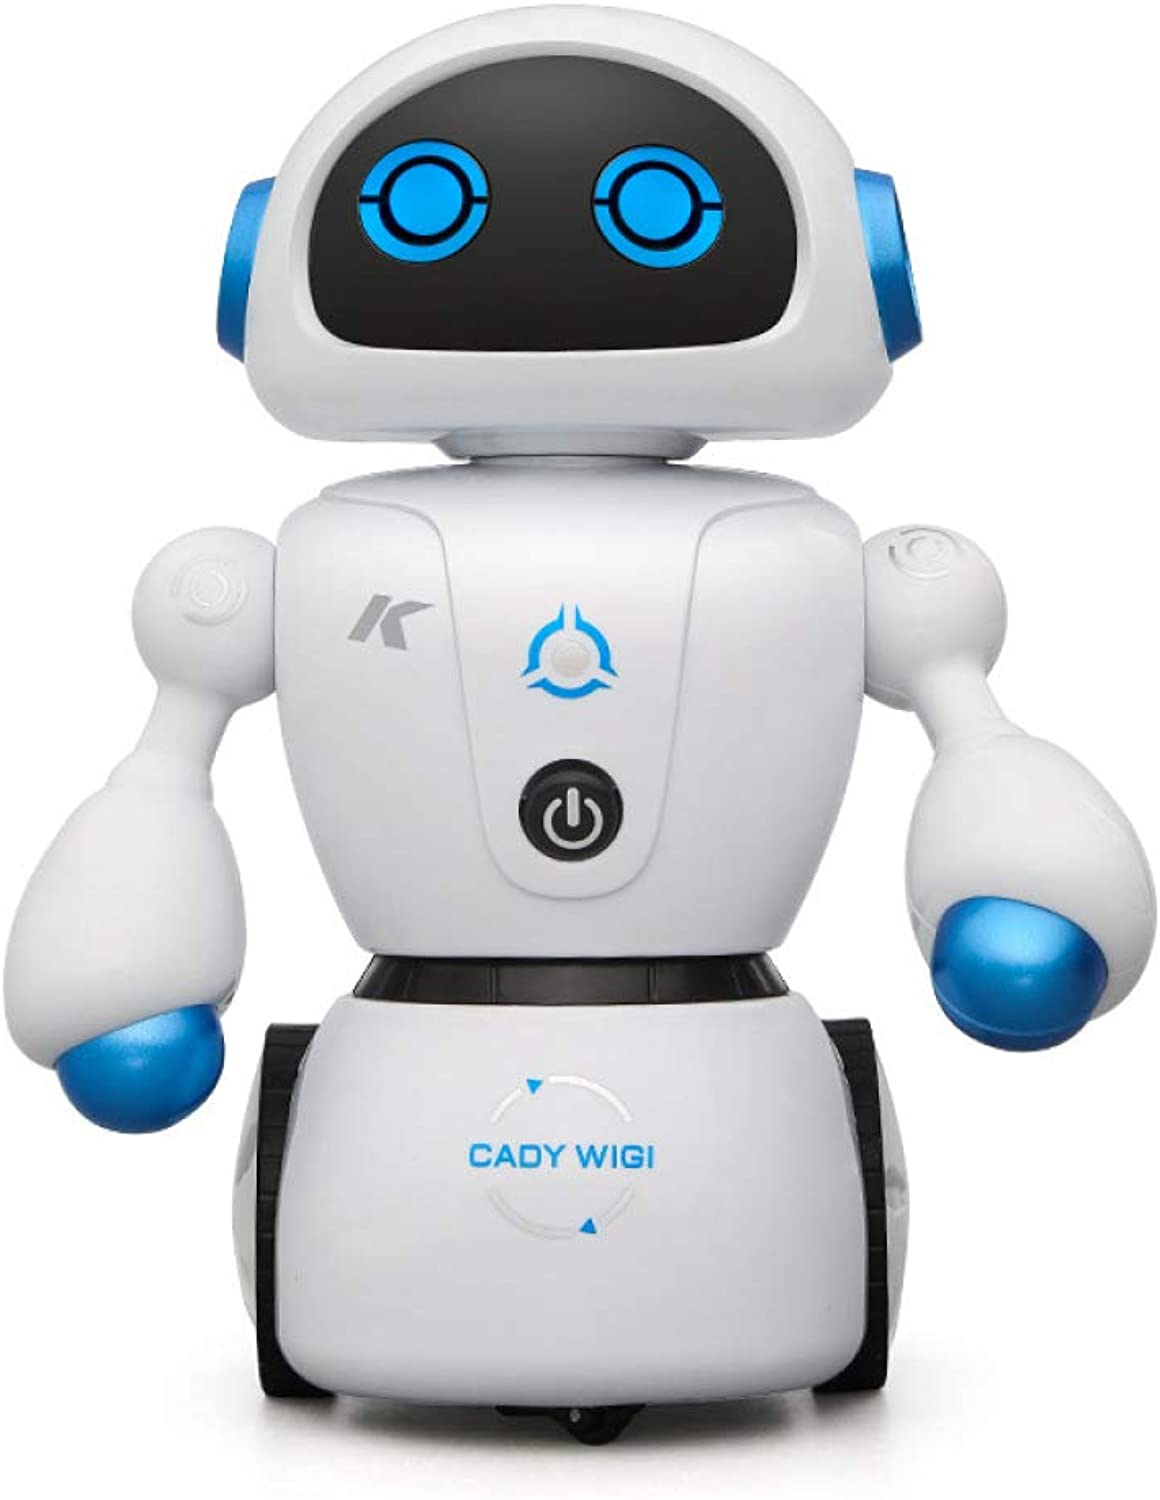 ZDY Robot Toy For Kids Intelligent RC Toy,With Remote Control Programmable Dancing Walking Rechargeable Music Lights Singing Talks LED Flashing Eyesorange bluee,bluee